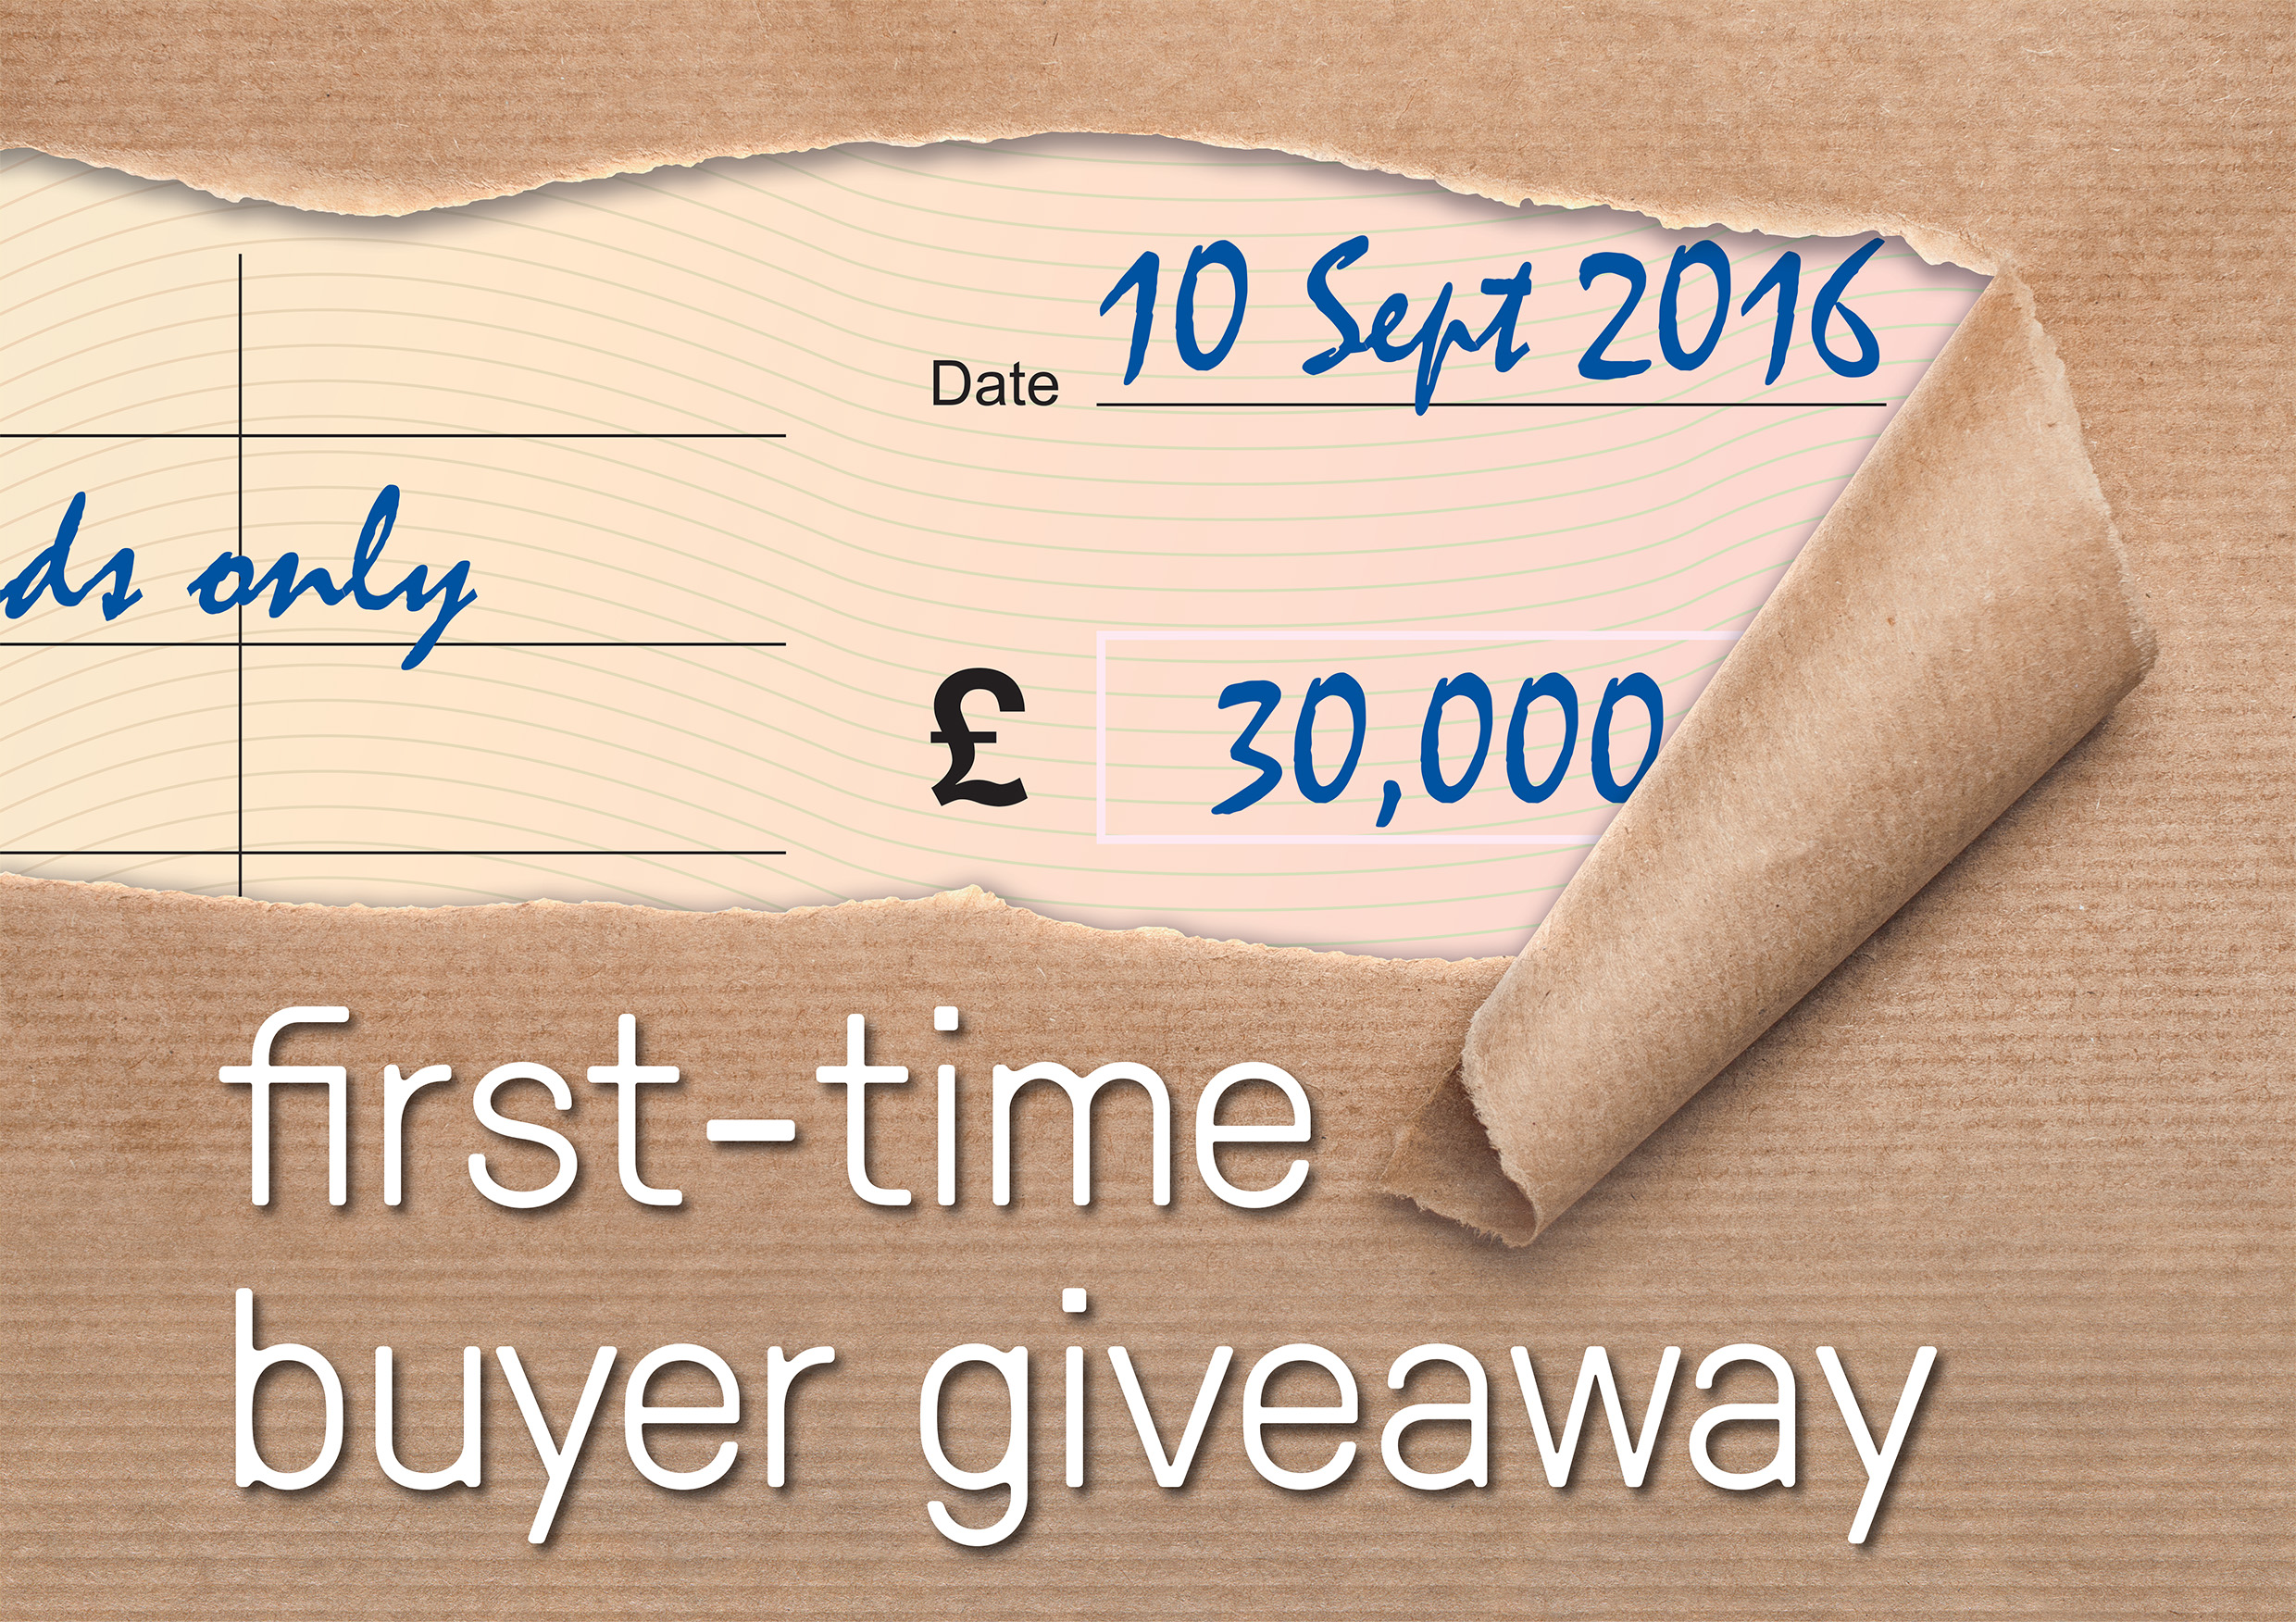 £30,000 giveaway for first-time buyers at special open day